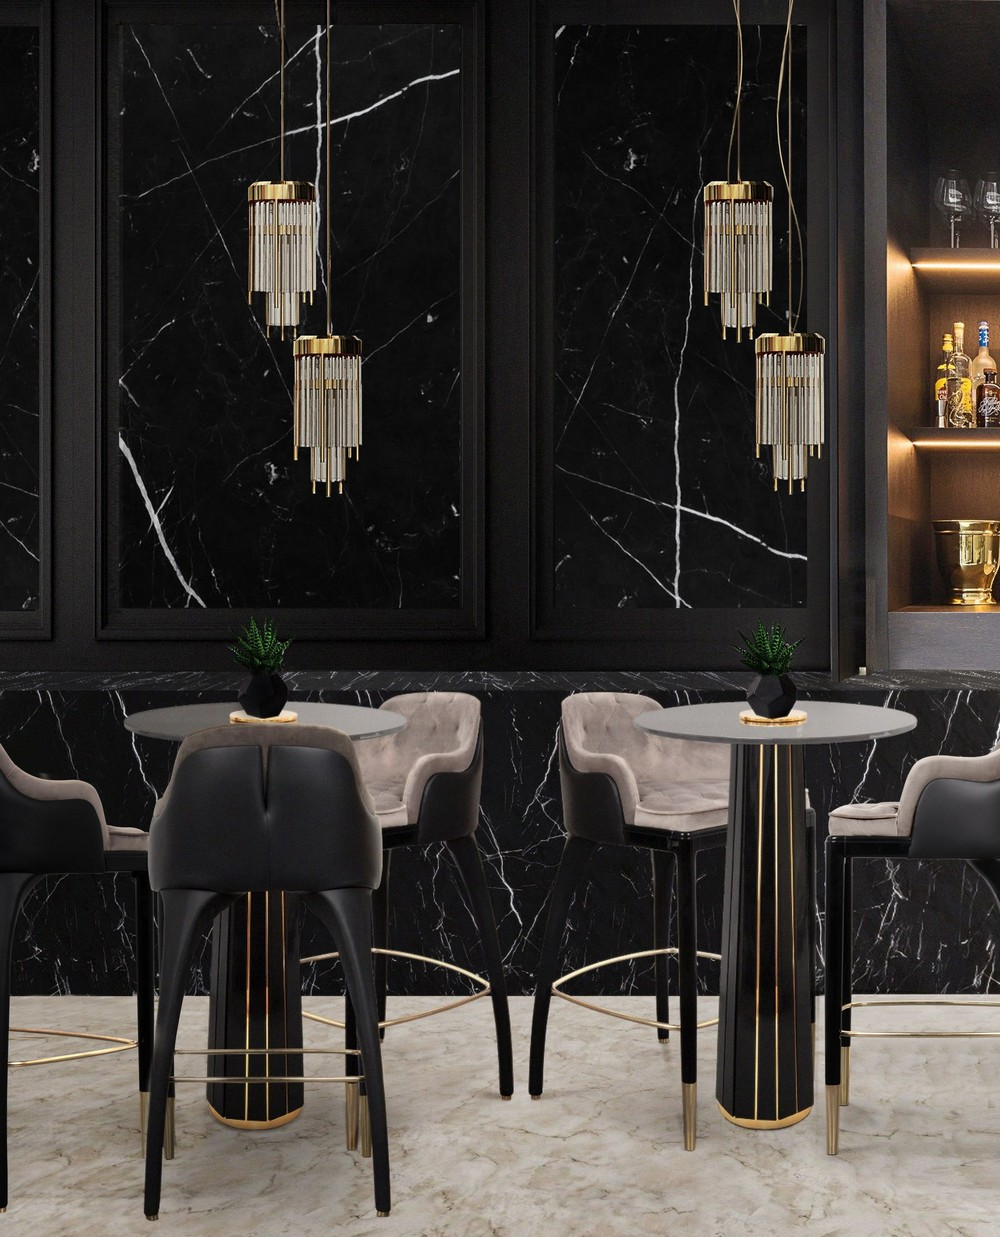 luxury dining rooms Take a Walk on The Dark Side: The Glamour of Black Luxury Dining Rooms PwWsFbCc